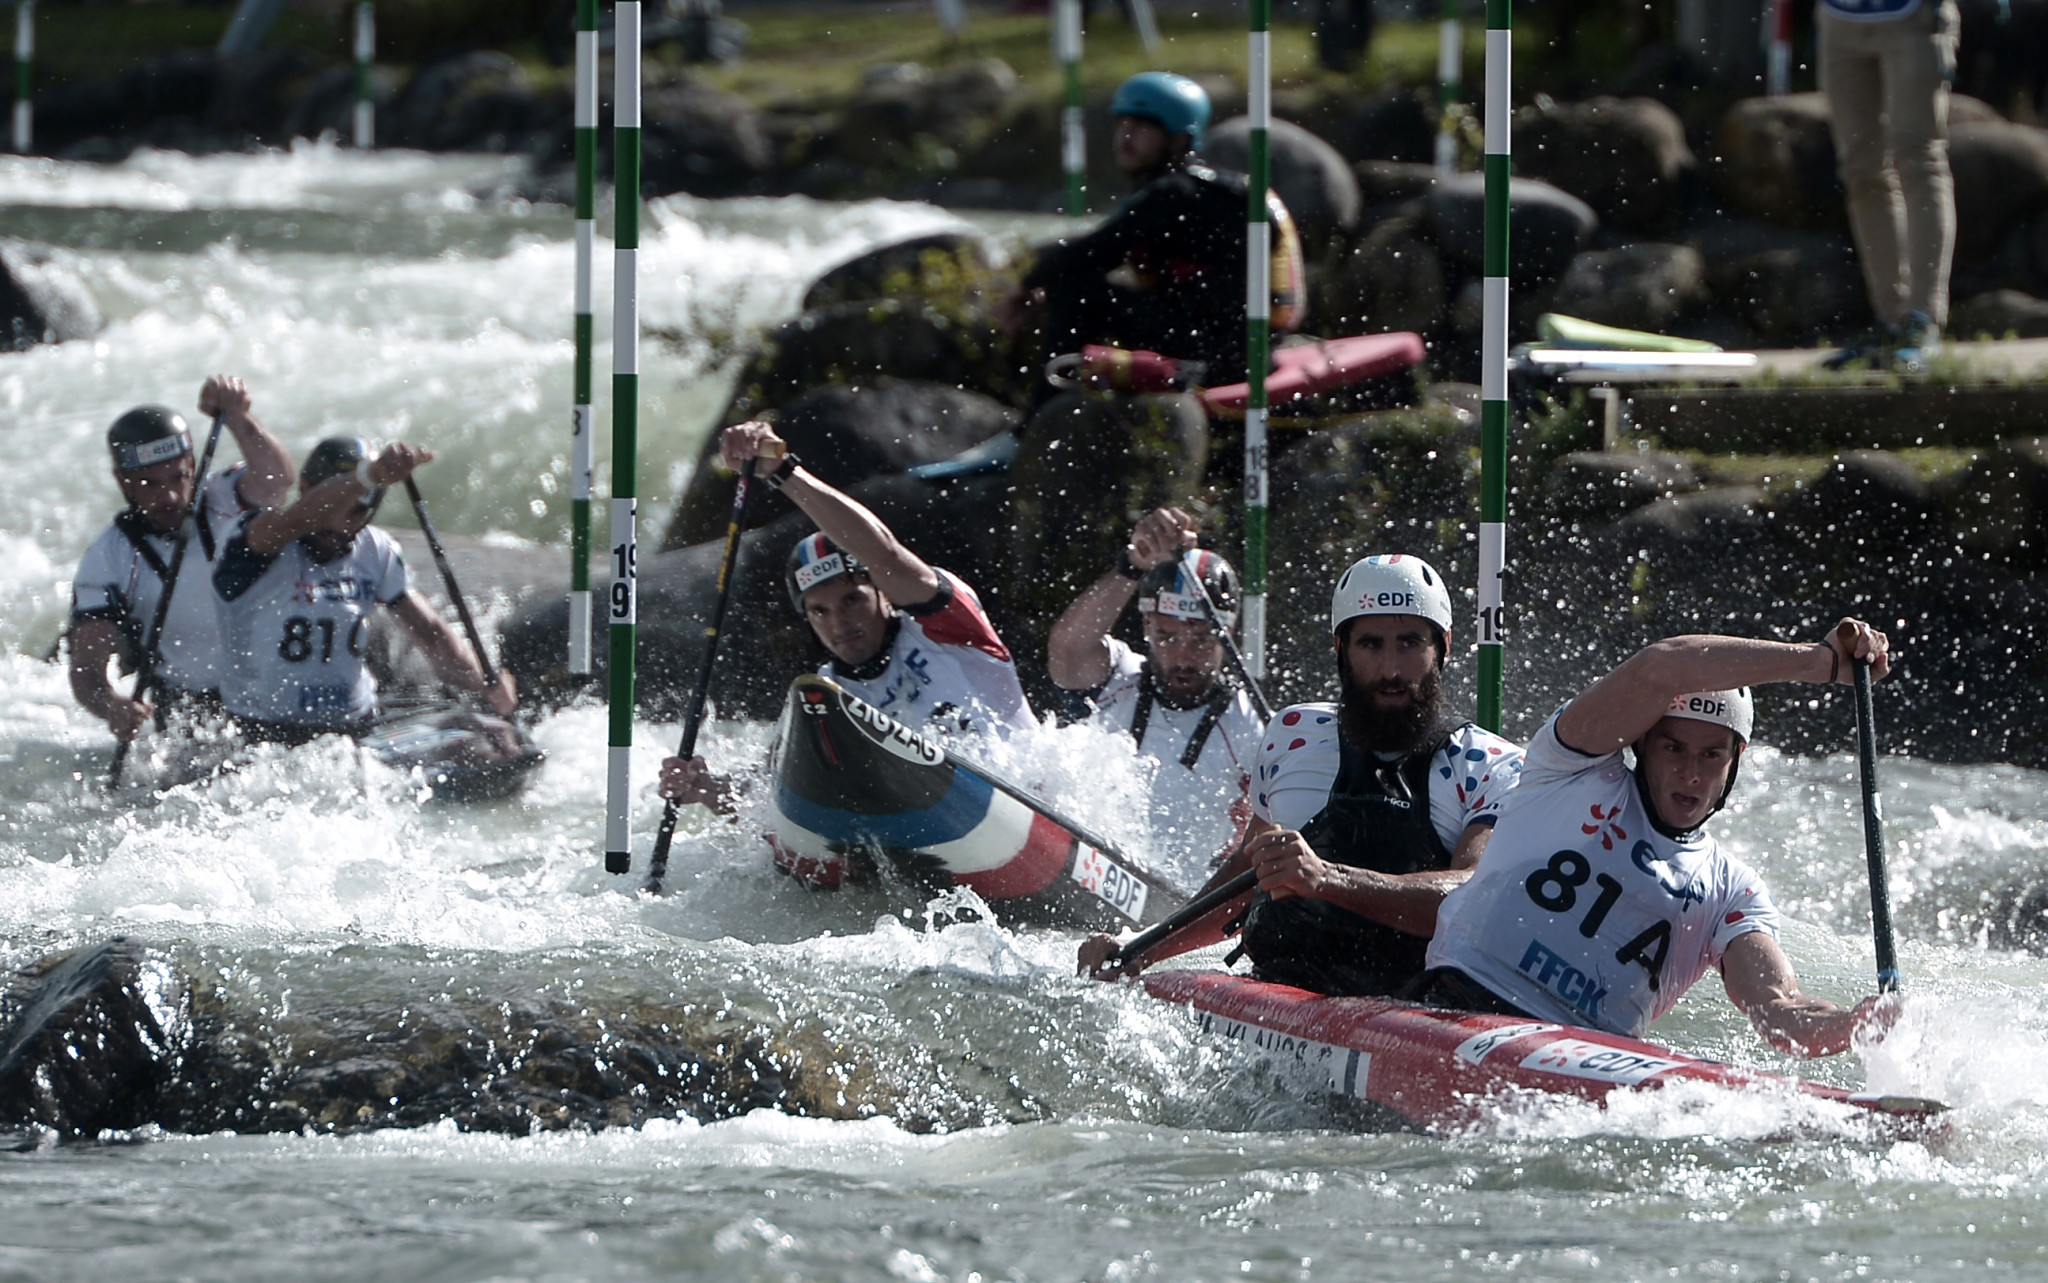 Exclusive: ICF consider new options including extreme slalom for future Games